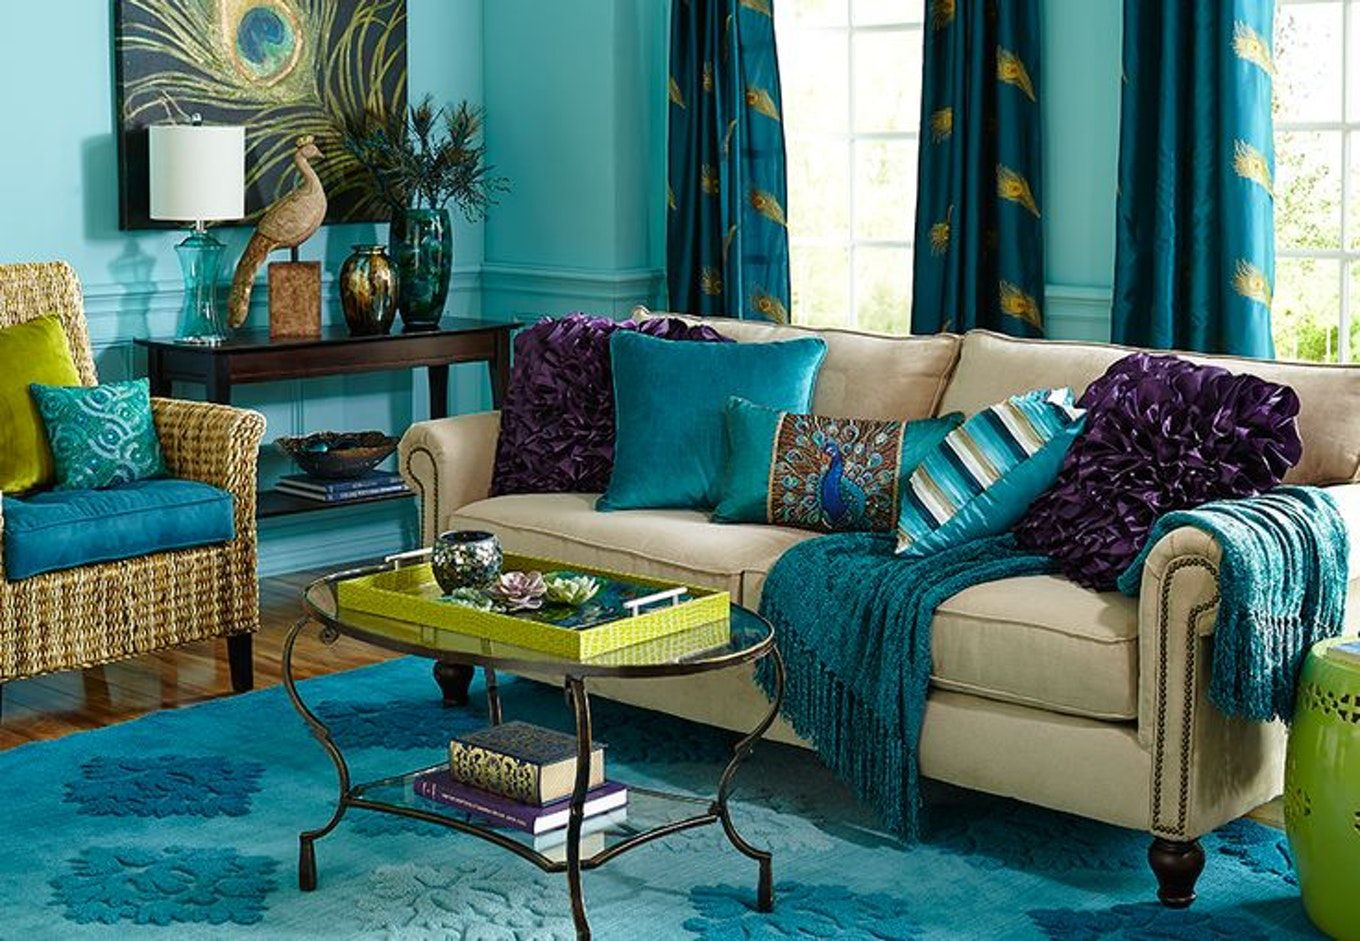 Image Result For Peacock Room Decor Ideas Peacock Room Decor Wallpaper Living Room Peacock Living Room #peacock #decor #living #room